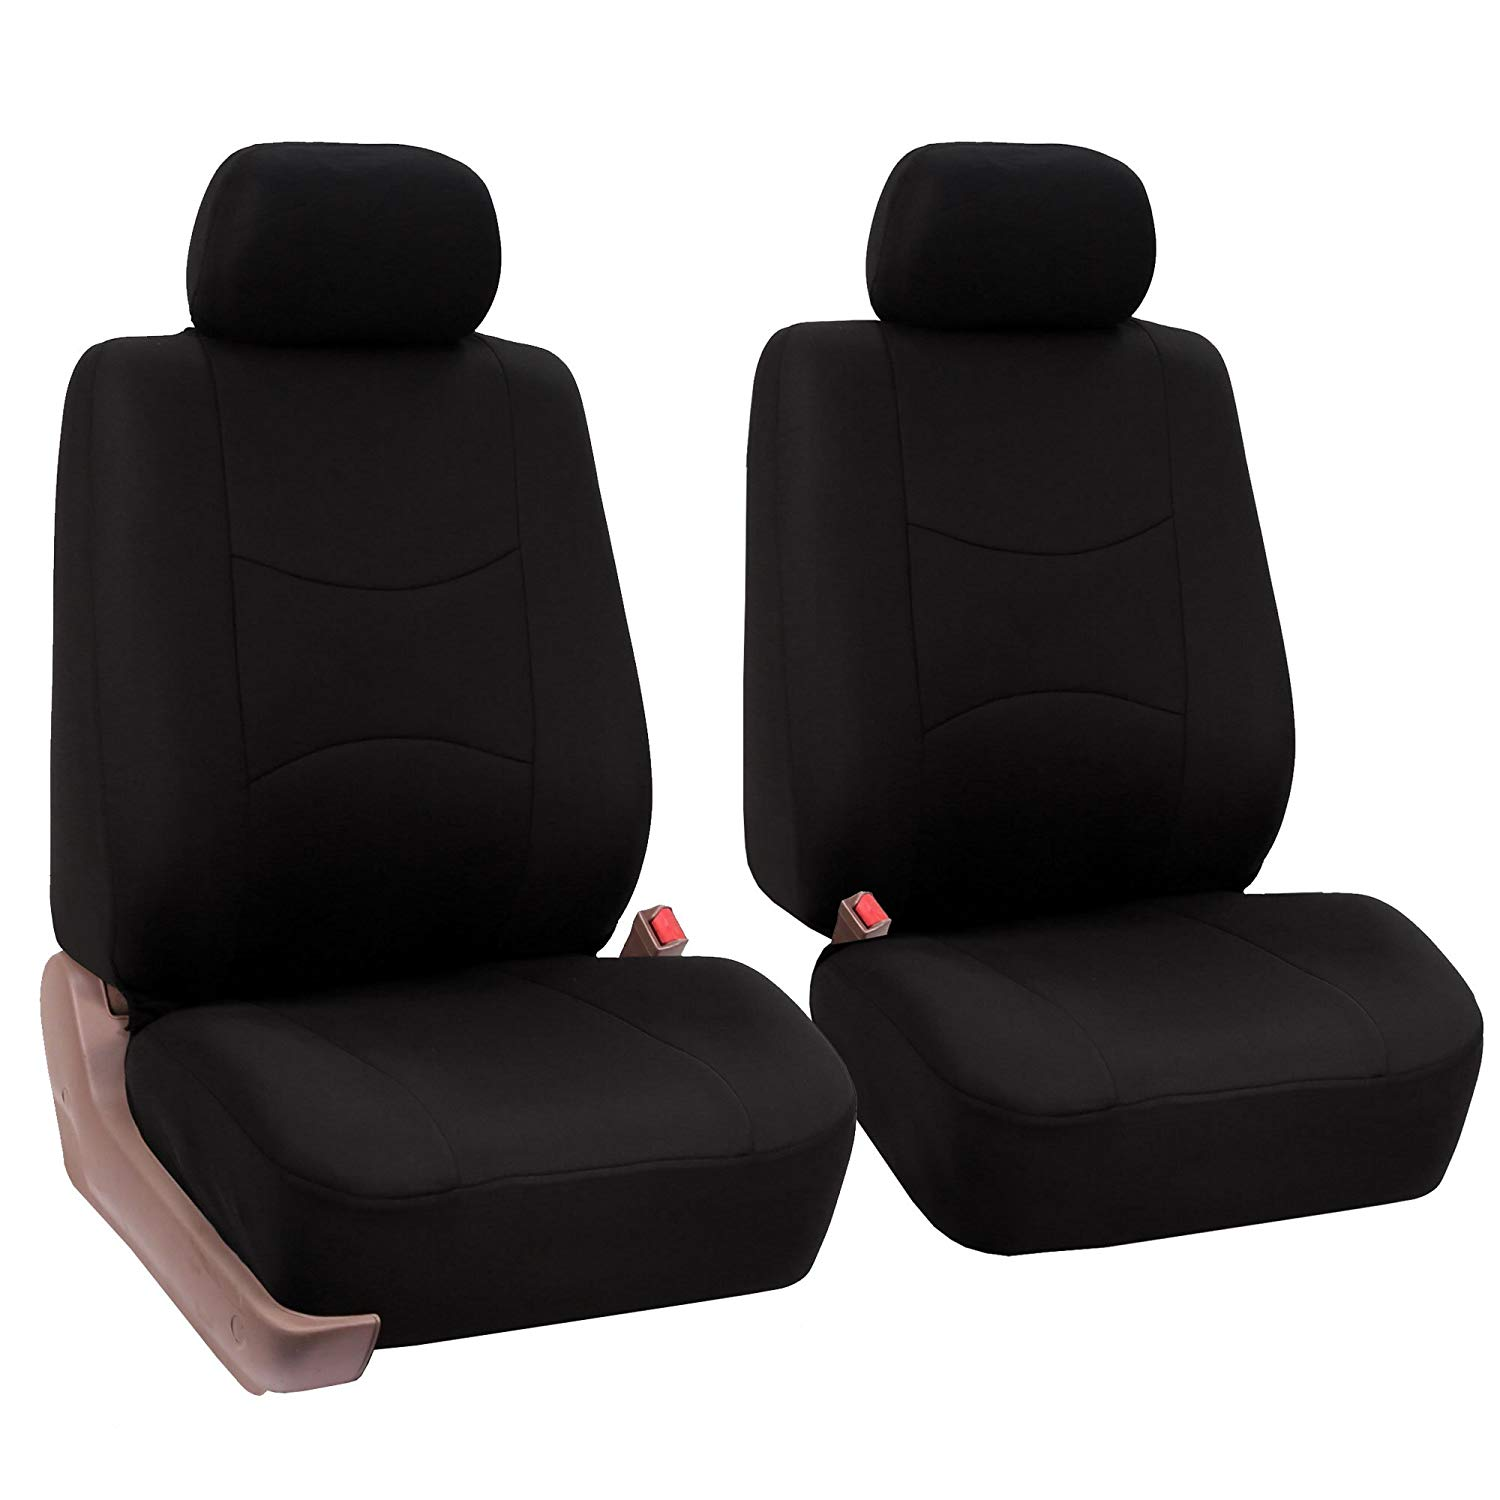 FH-FB50102 Group Universal Fit Seat Cover